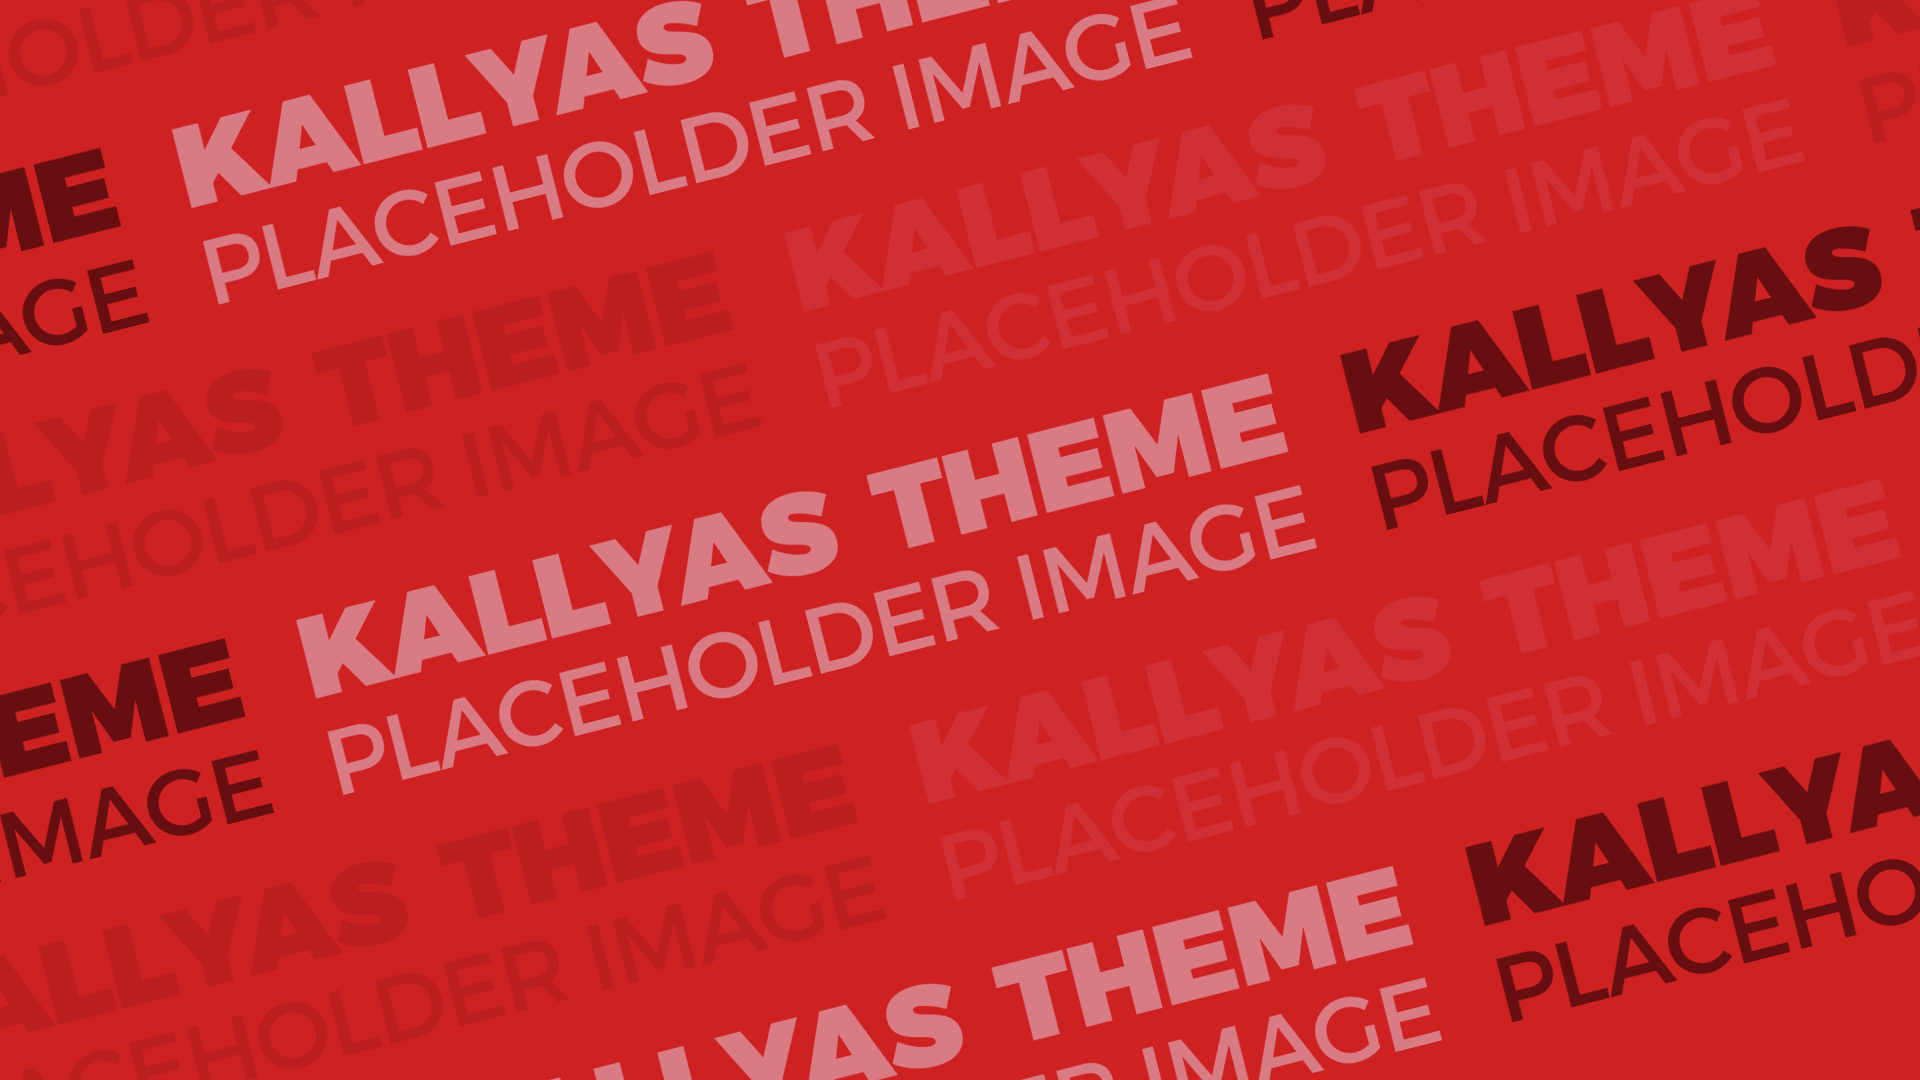 https://www.might.org.my/wp-content/uploads/2017/03/kallyas_sample.png